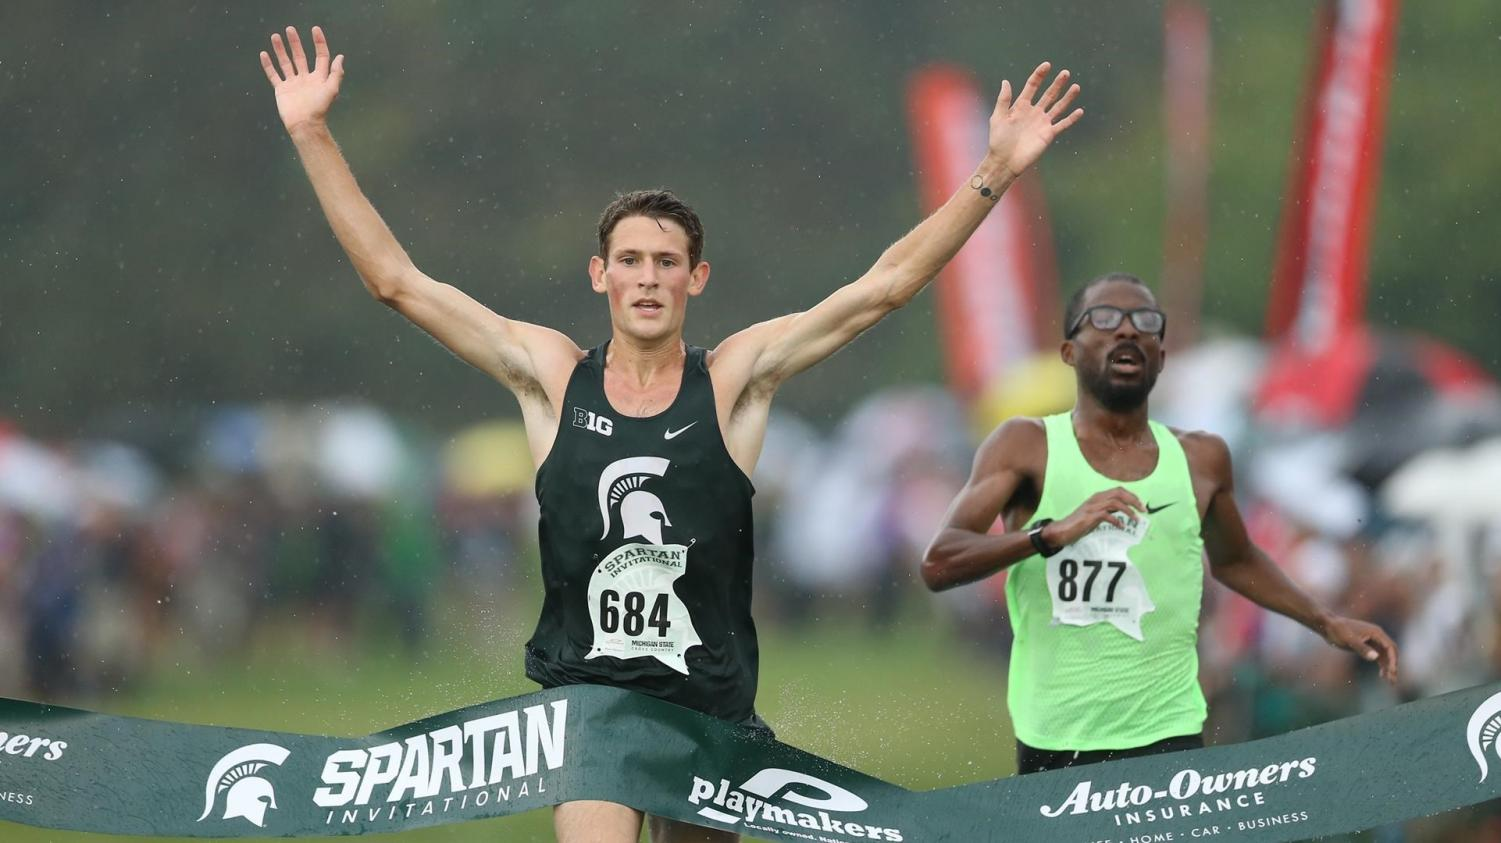 Morgan Beadlescomb at the 2019 Spartan Invite in East Lansing. (Credit: MSU Athletic Communications)